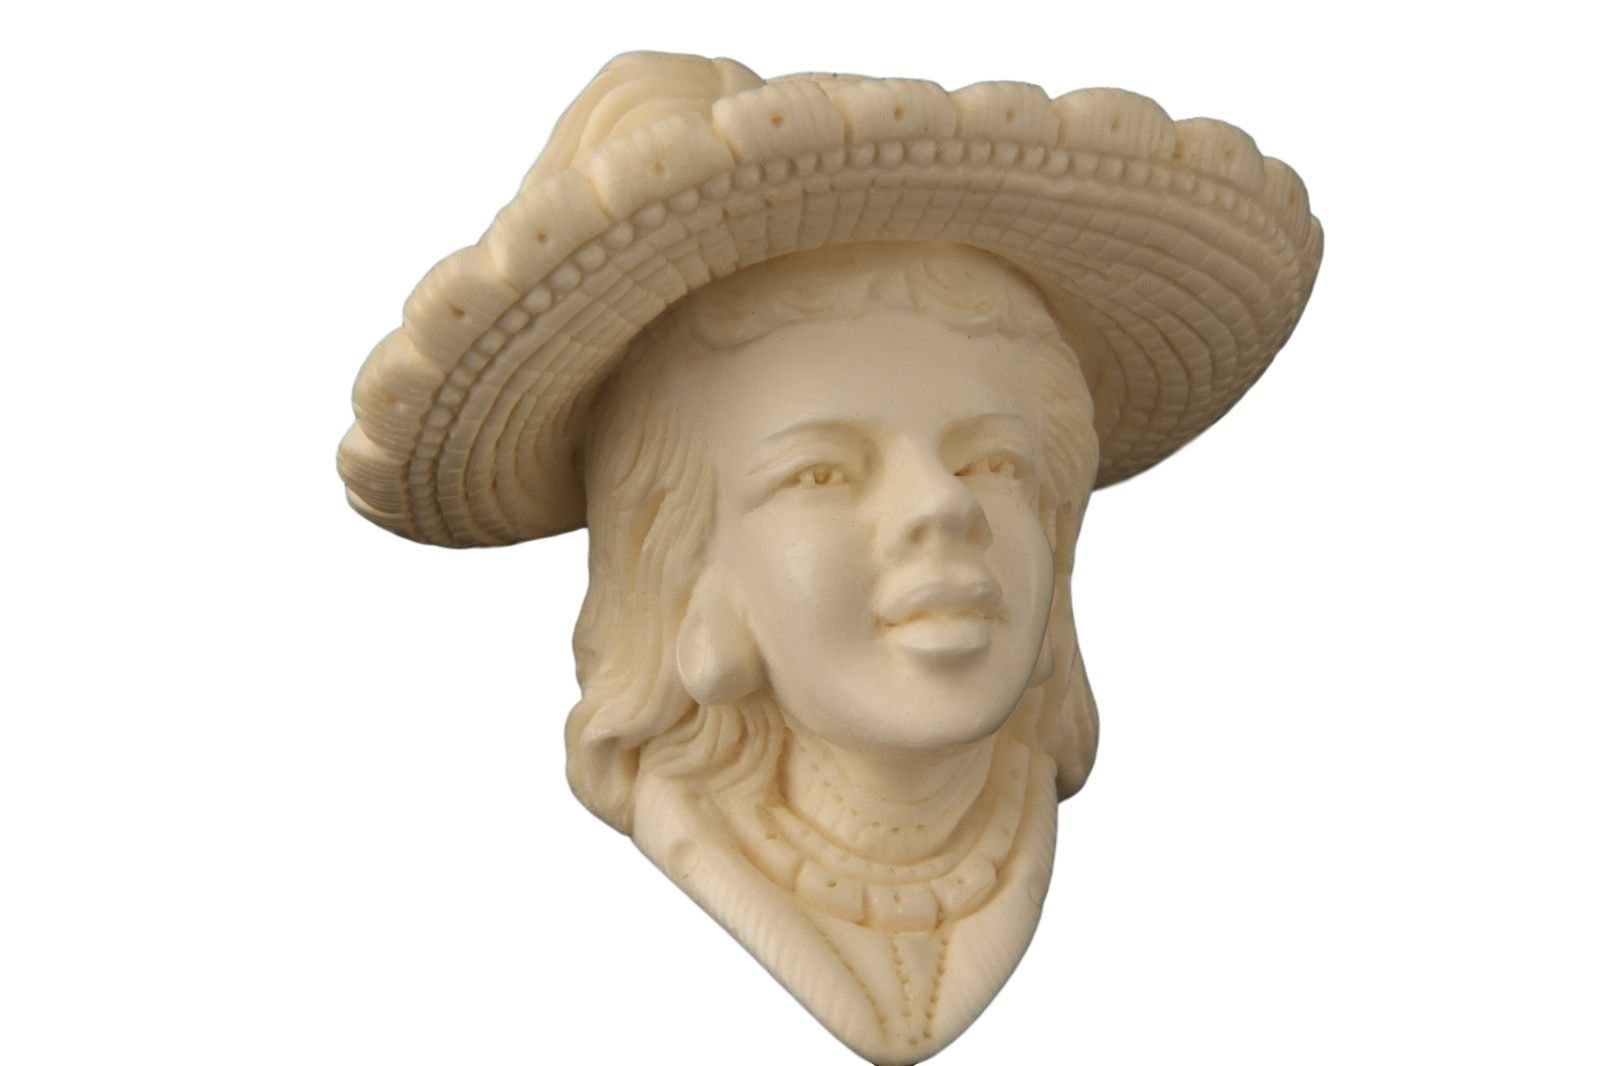 Meerschaum Pipe - Victorian Lady from Master Carver E. Cevher - Tobacco Smoking Pipe Hand Made from the Finest Block Meerschaum - New